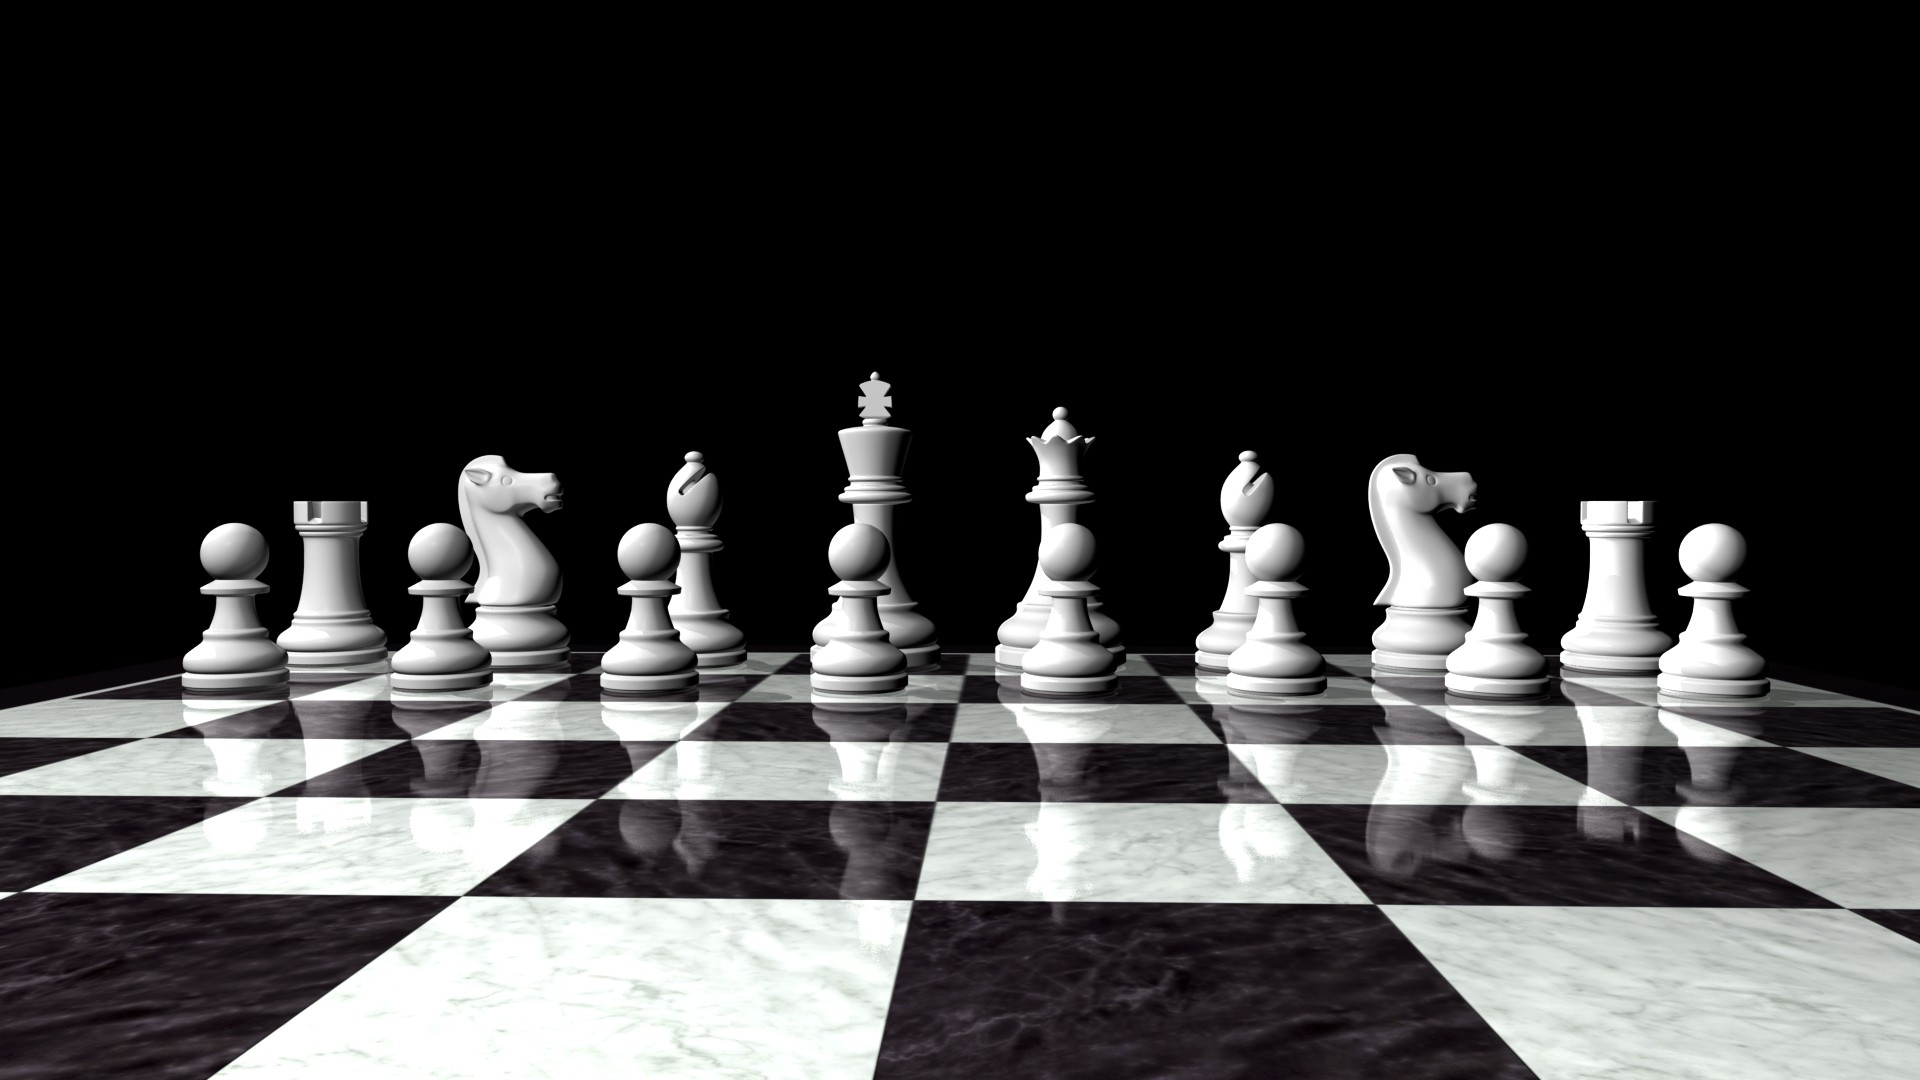 Download Autodesk Chess Wallpaper 76 Images